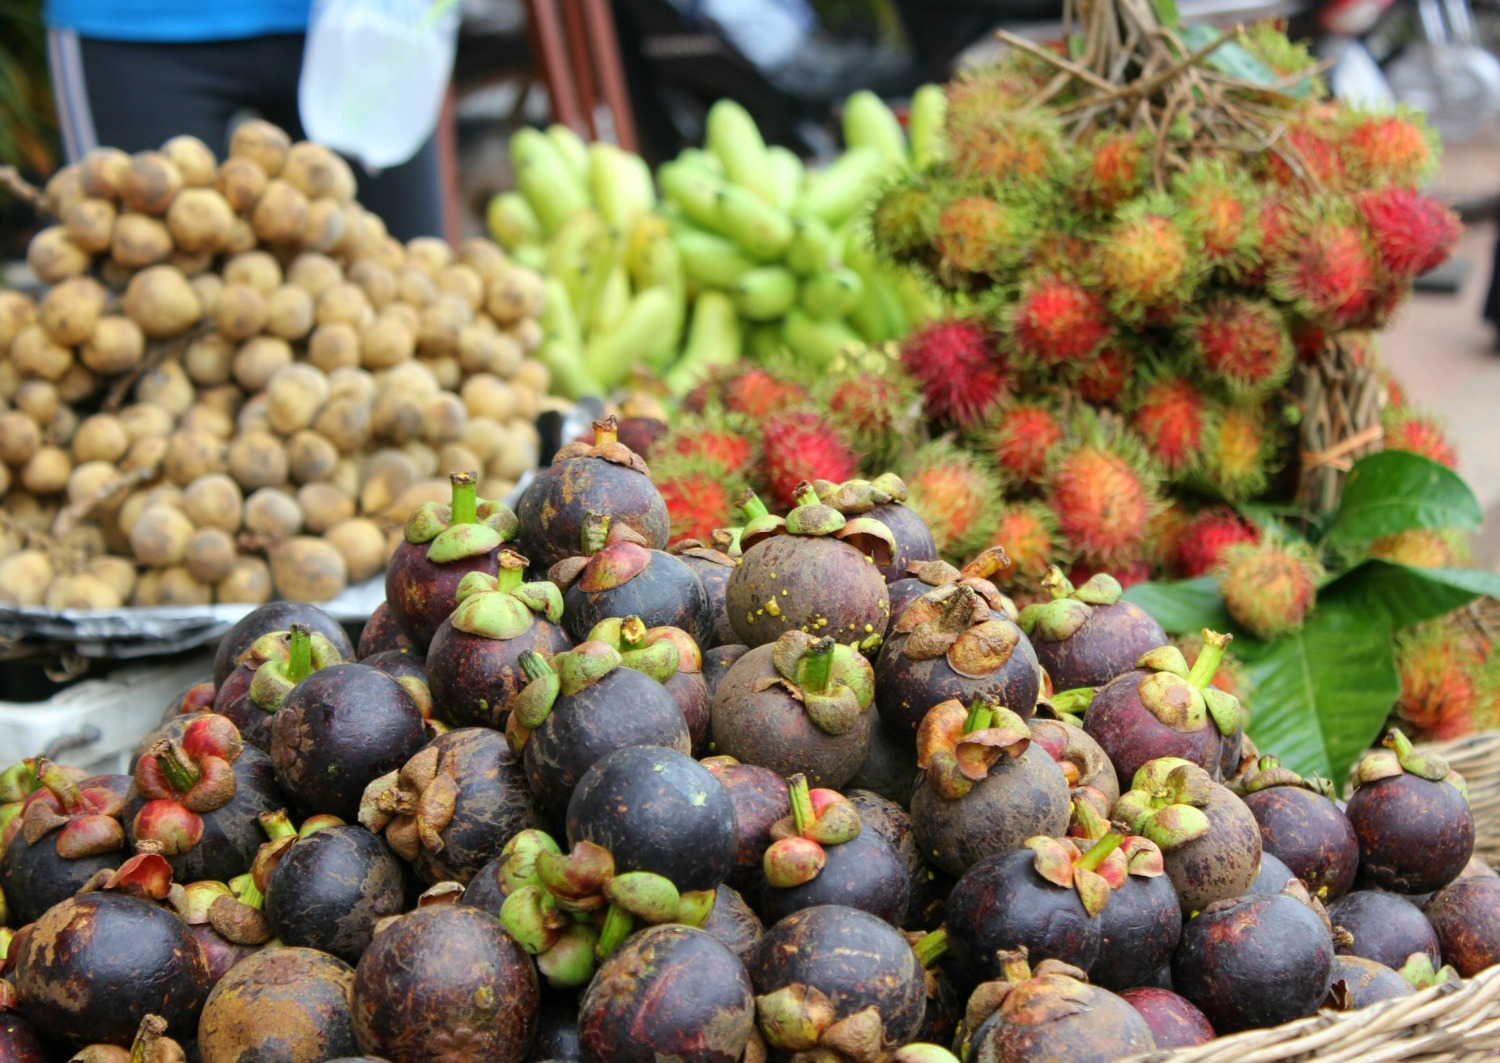 Piles of fruit for sale in Siem Reap - 12 reasons to visit Cambodia with kids